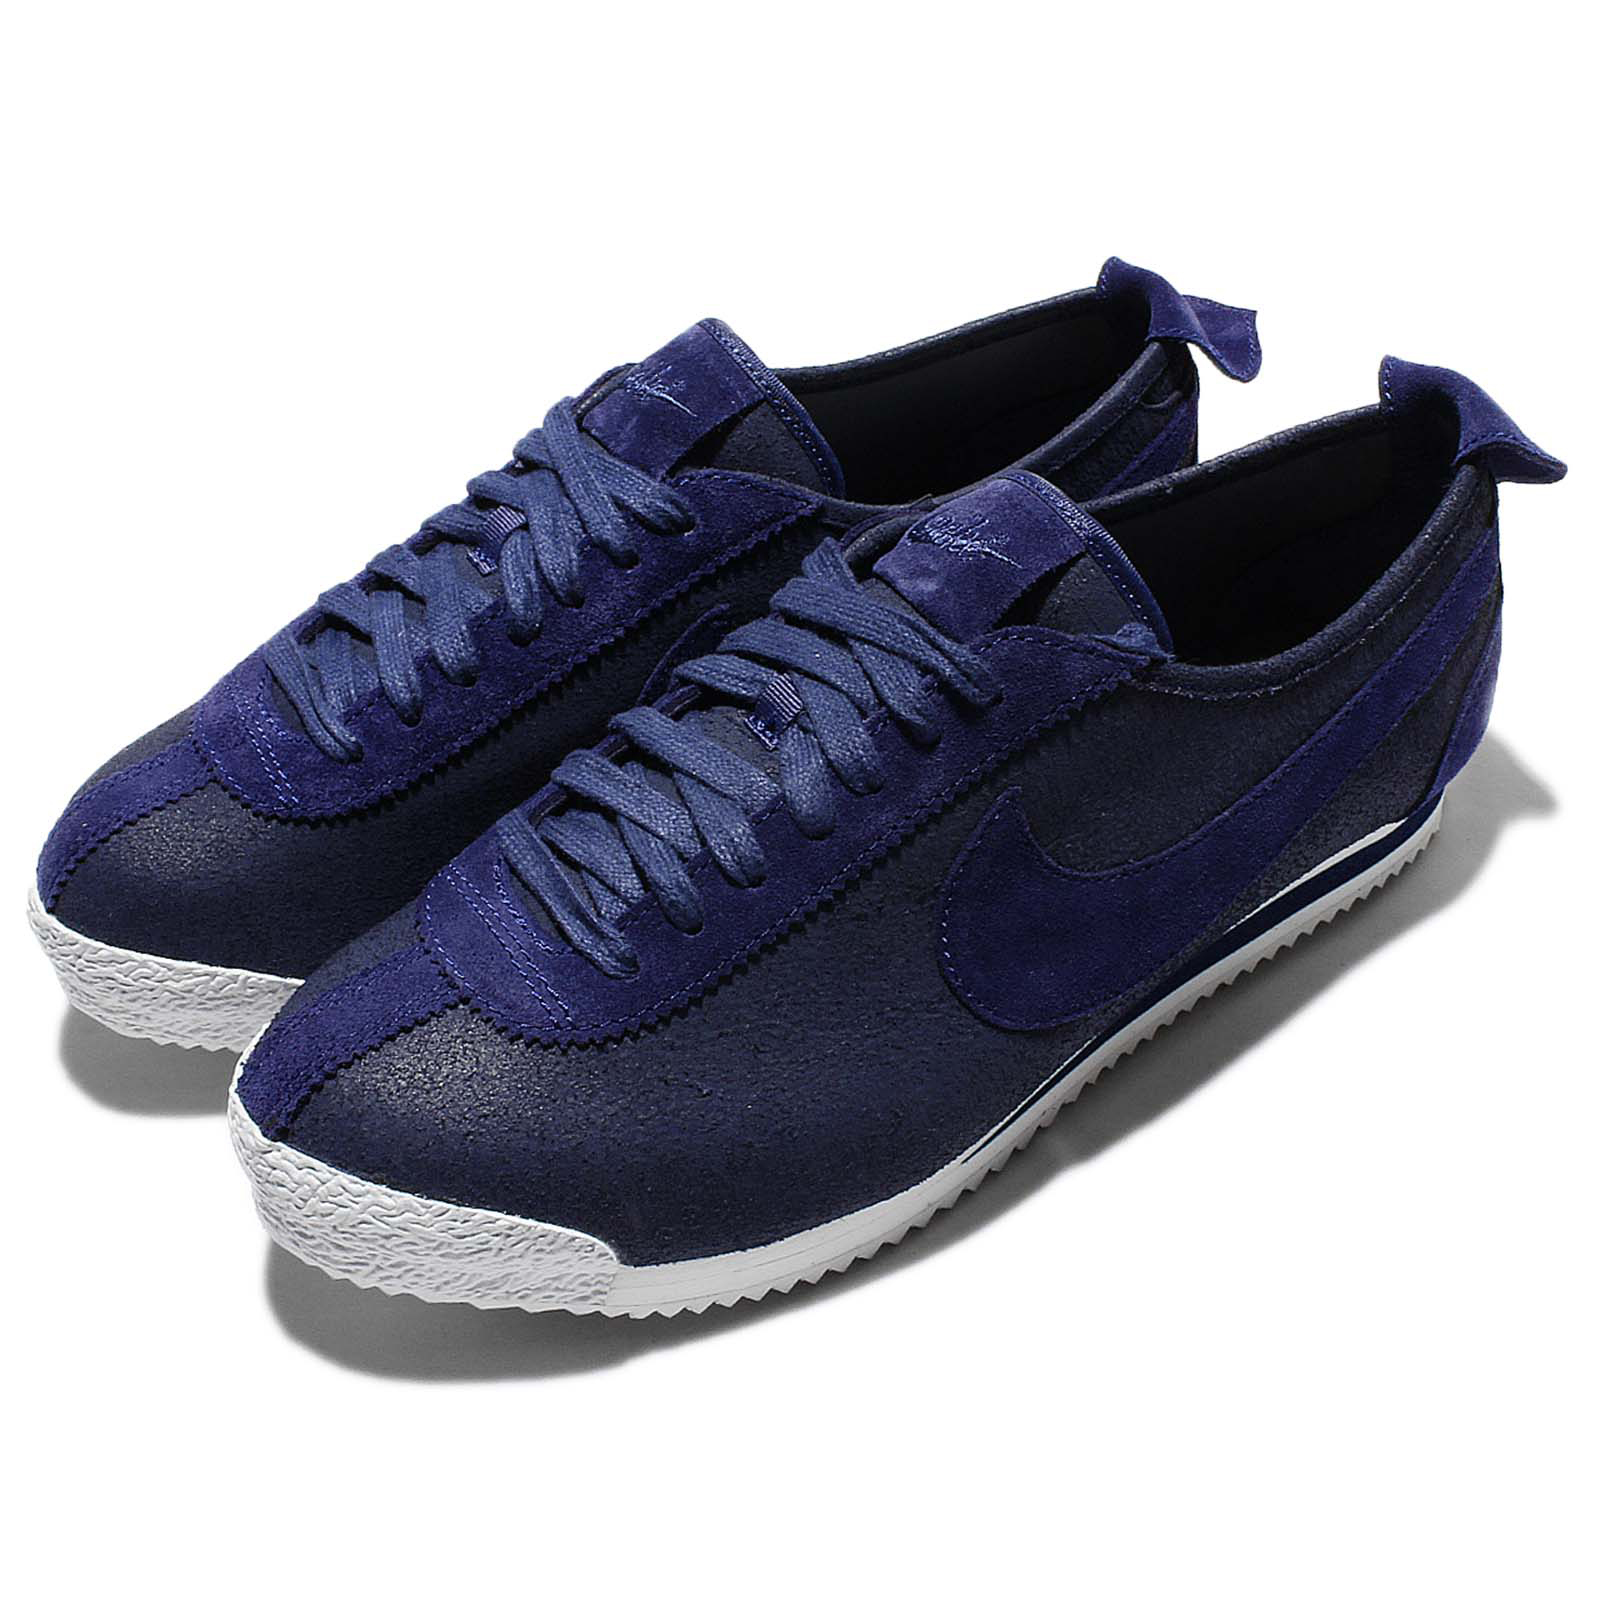 new arrival 7d7fa 73e75 Details about Nike Cortez 72 Loyal Blue White Mens Suede Casual Shoes  Sneakers 863173-400